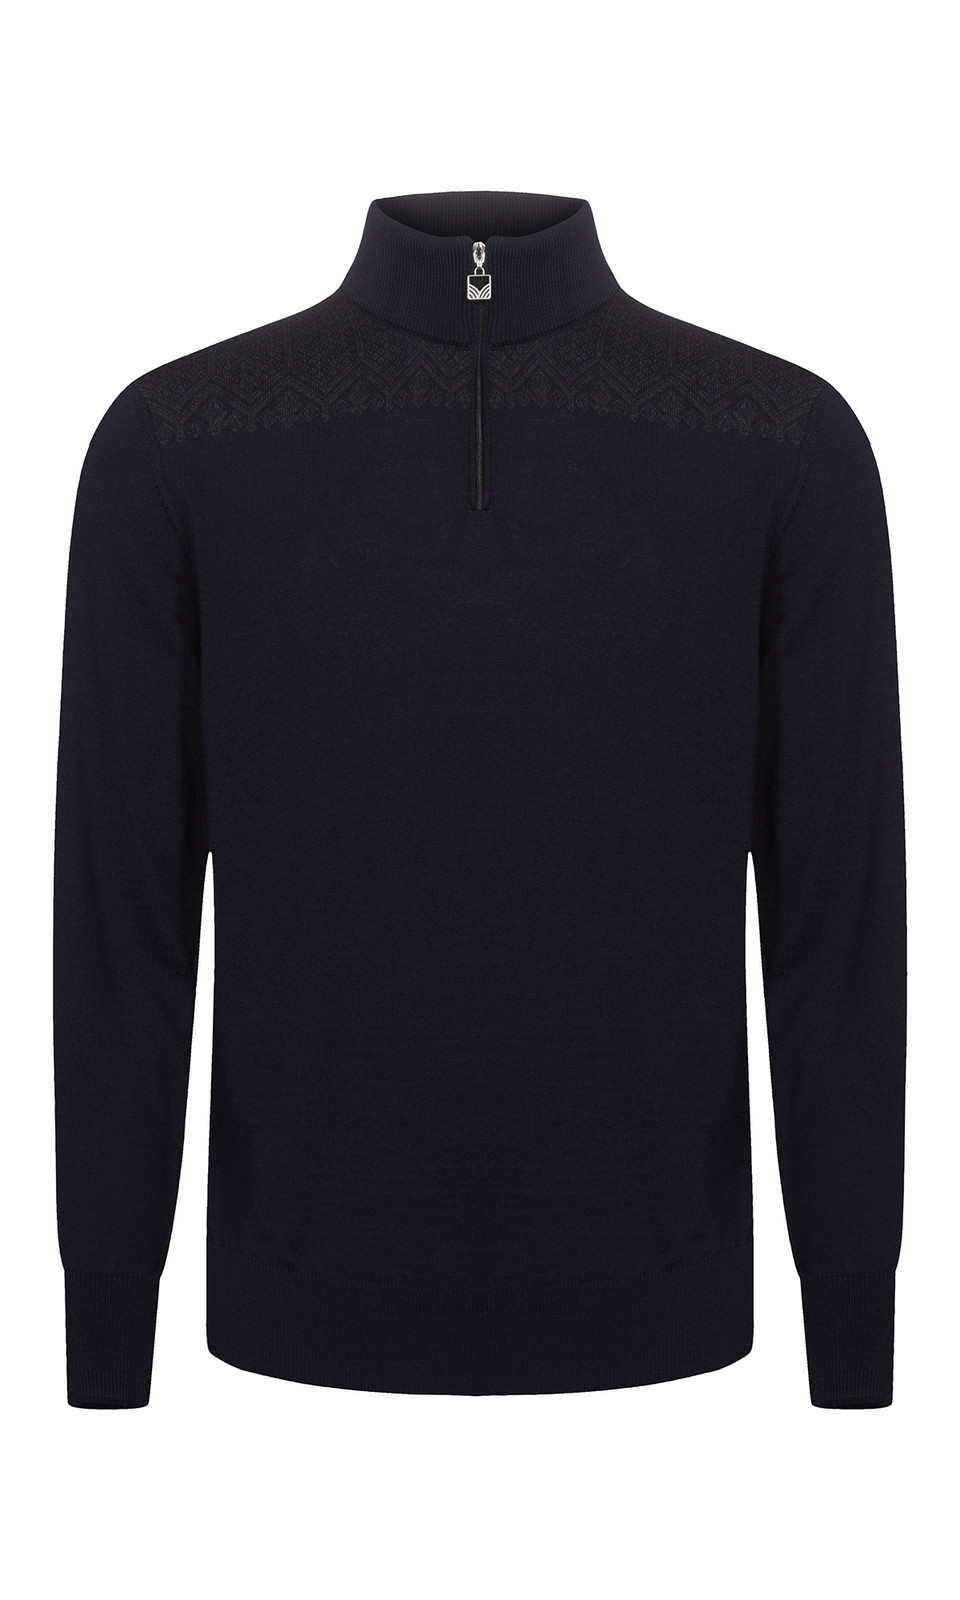 Dale of Norway Eirik Pullover - Navy/Dark Charcoal, 93851-H (93851-H)